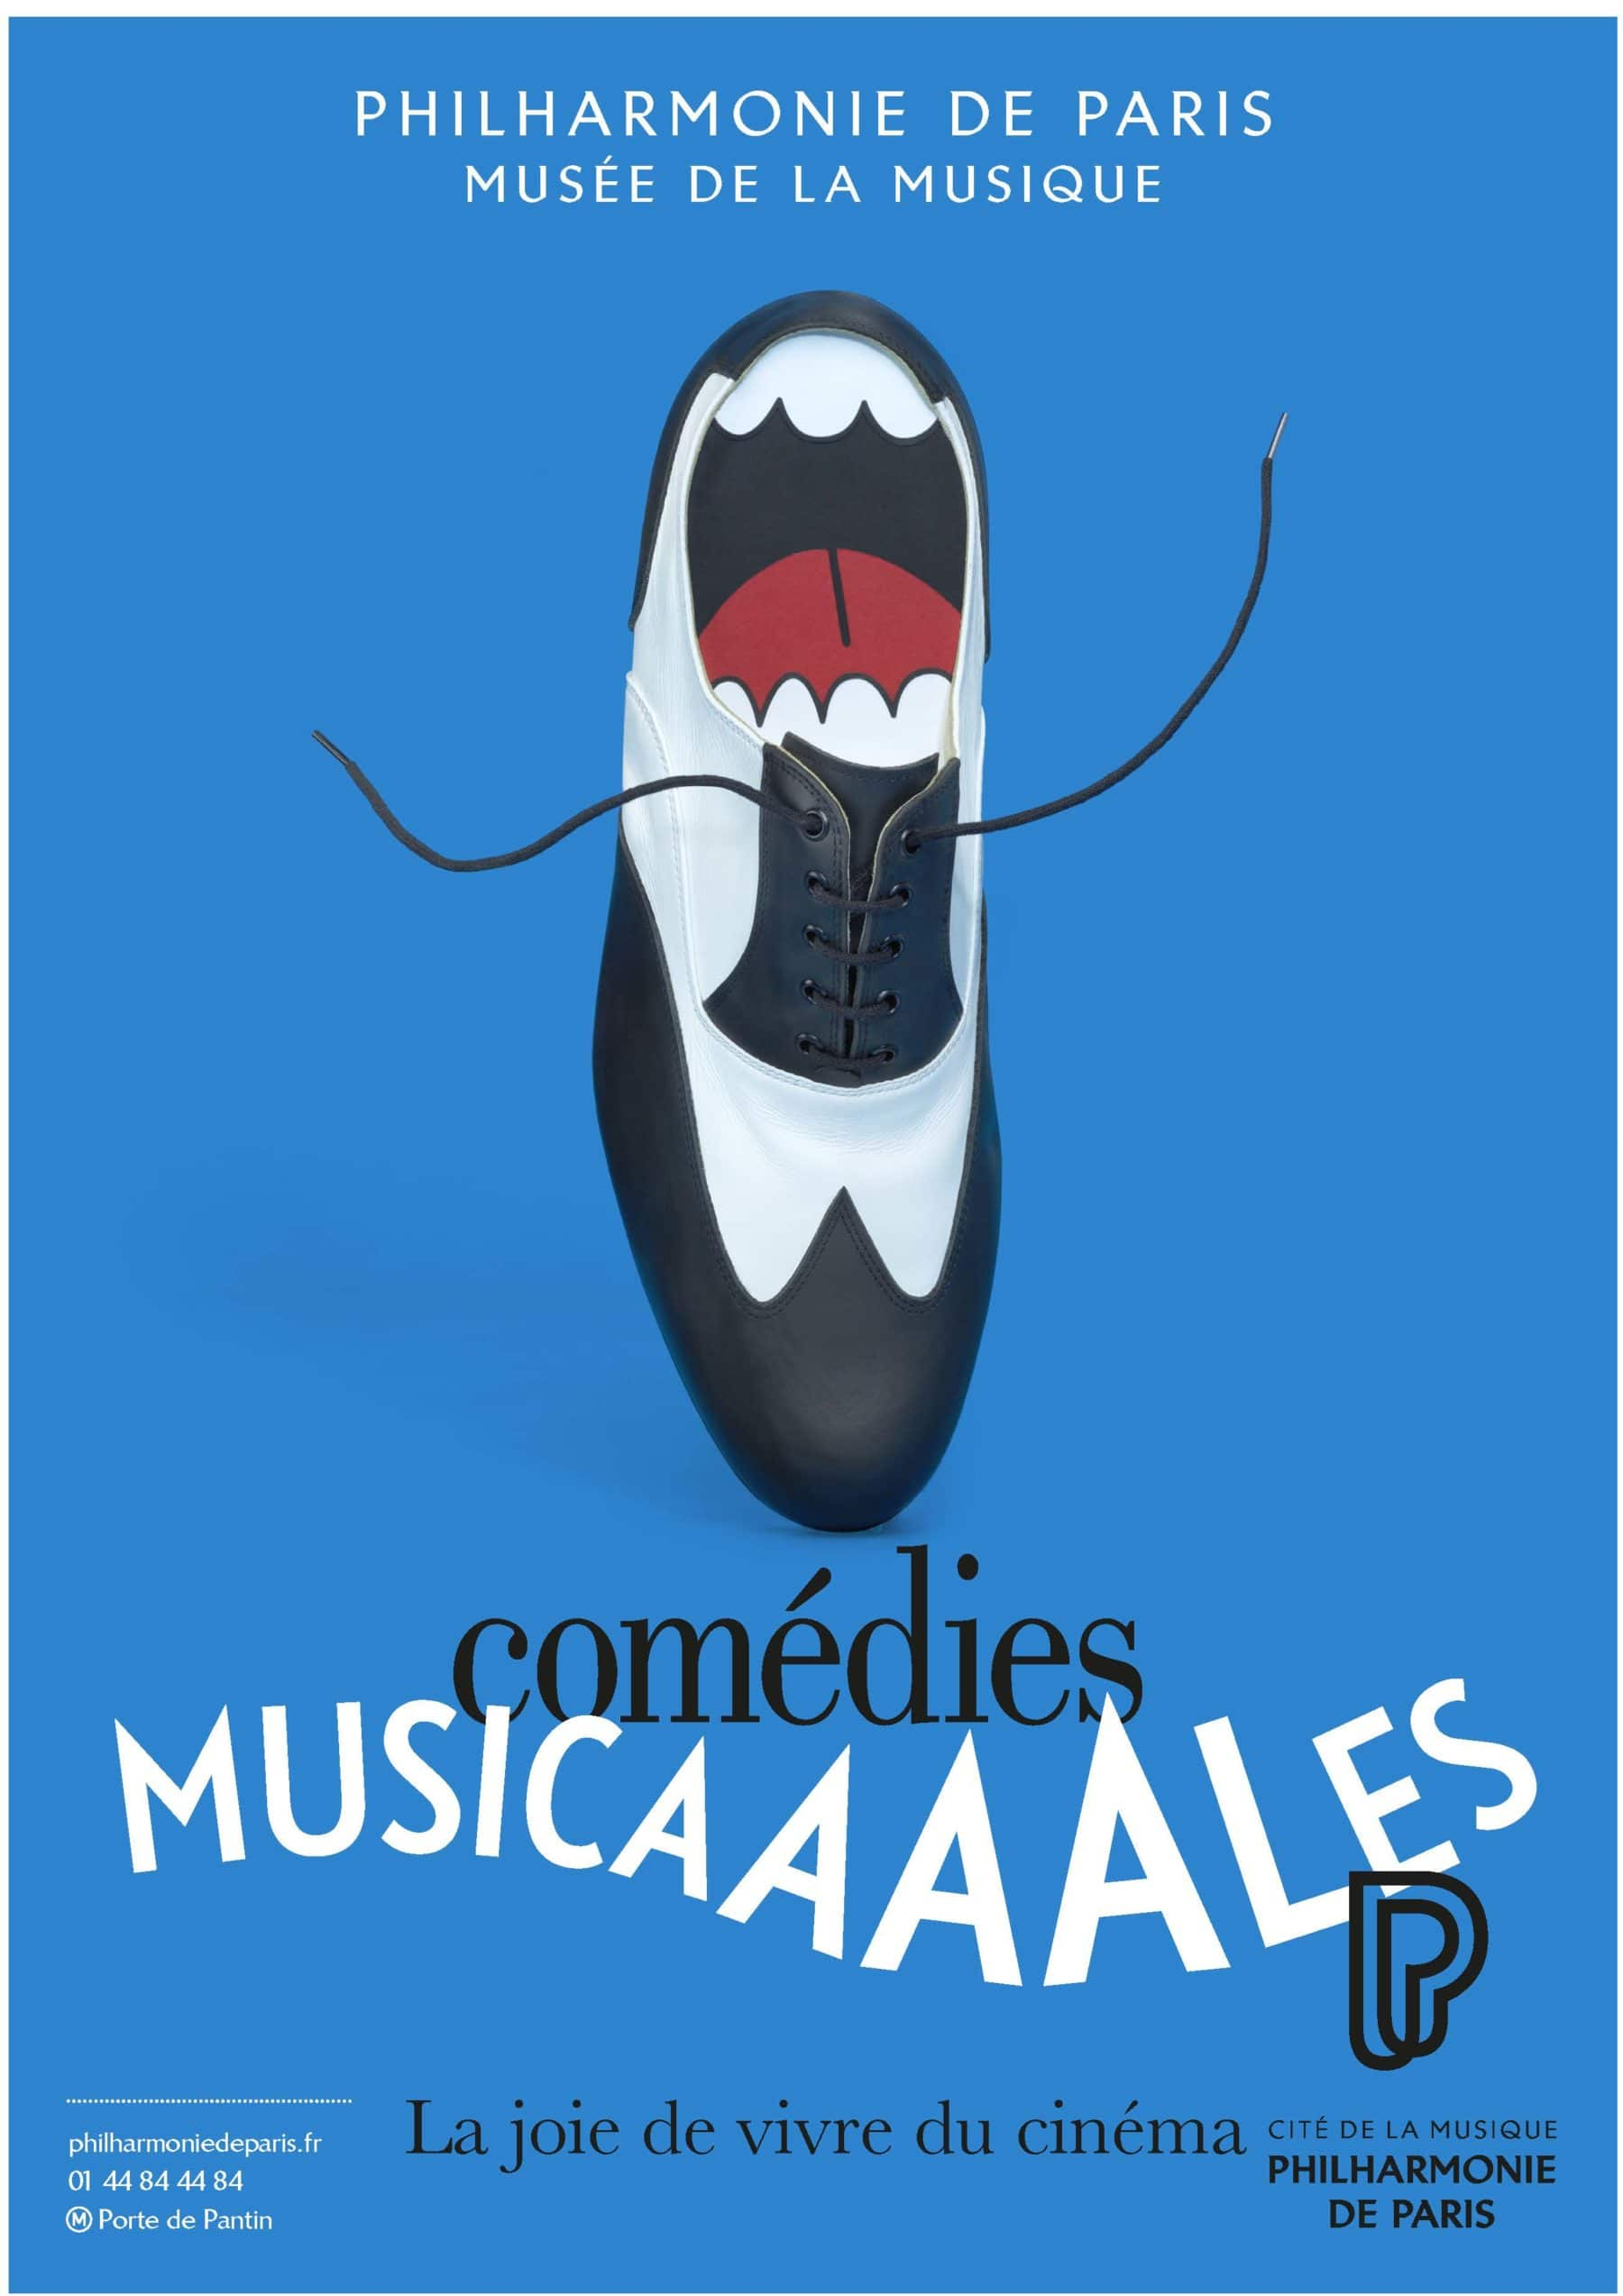 Musicals: A Glorious Feeling